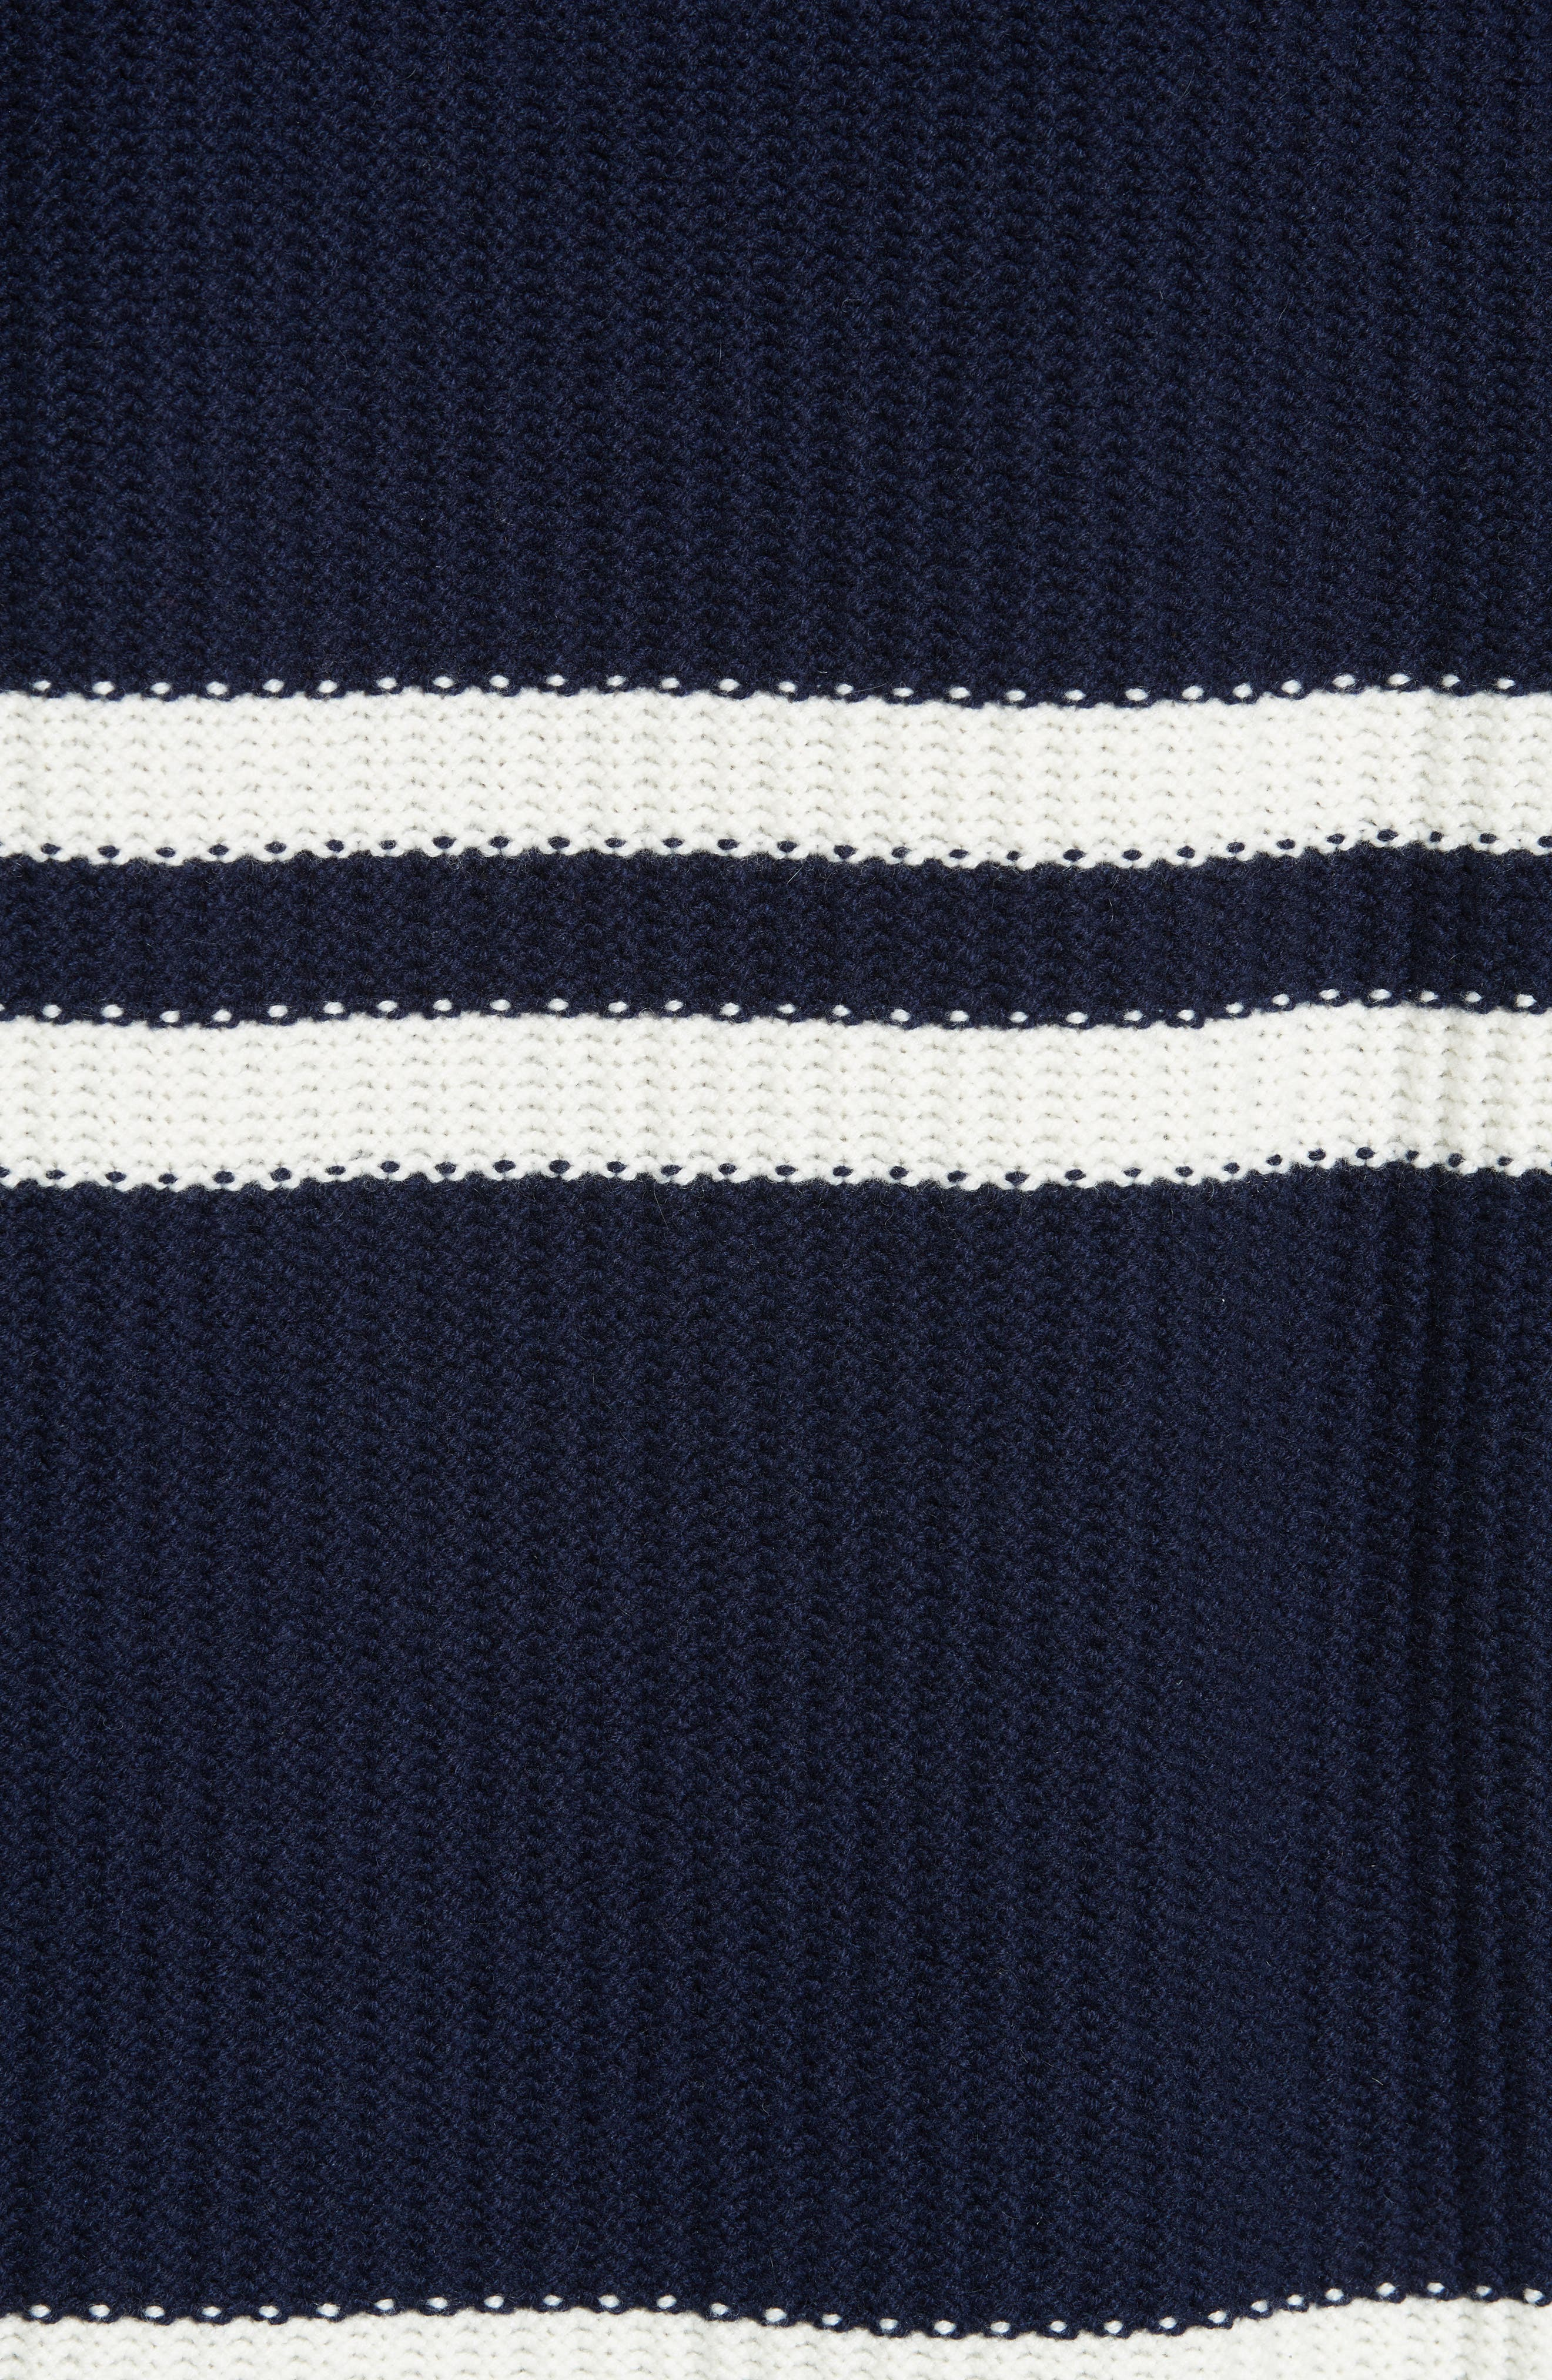 Tieve Stripe Cashmere & Cotton Sweater,                             Alternate thumbnail 5, color,                             NAVY/ ECRU